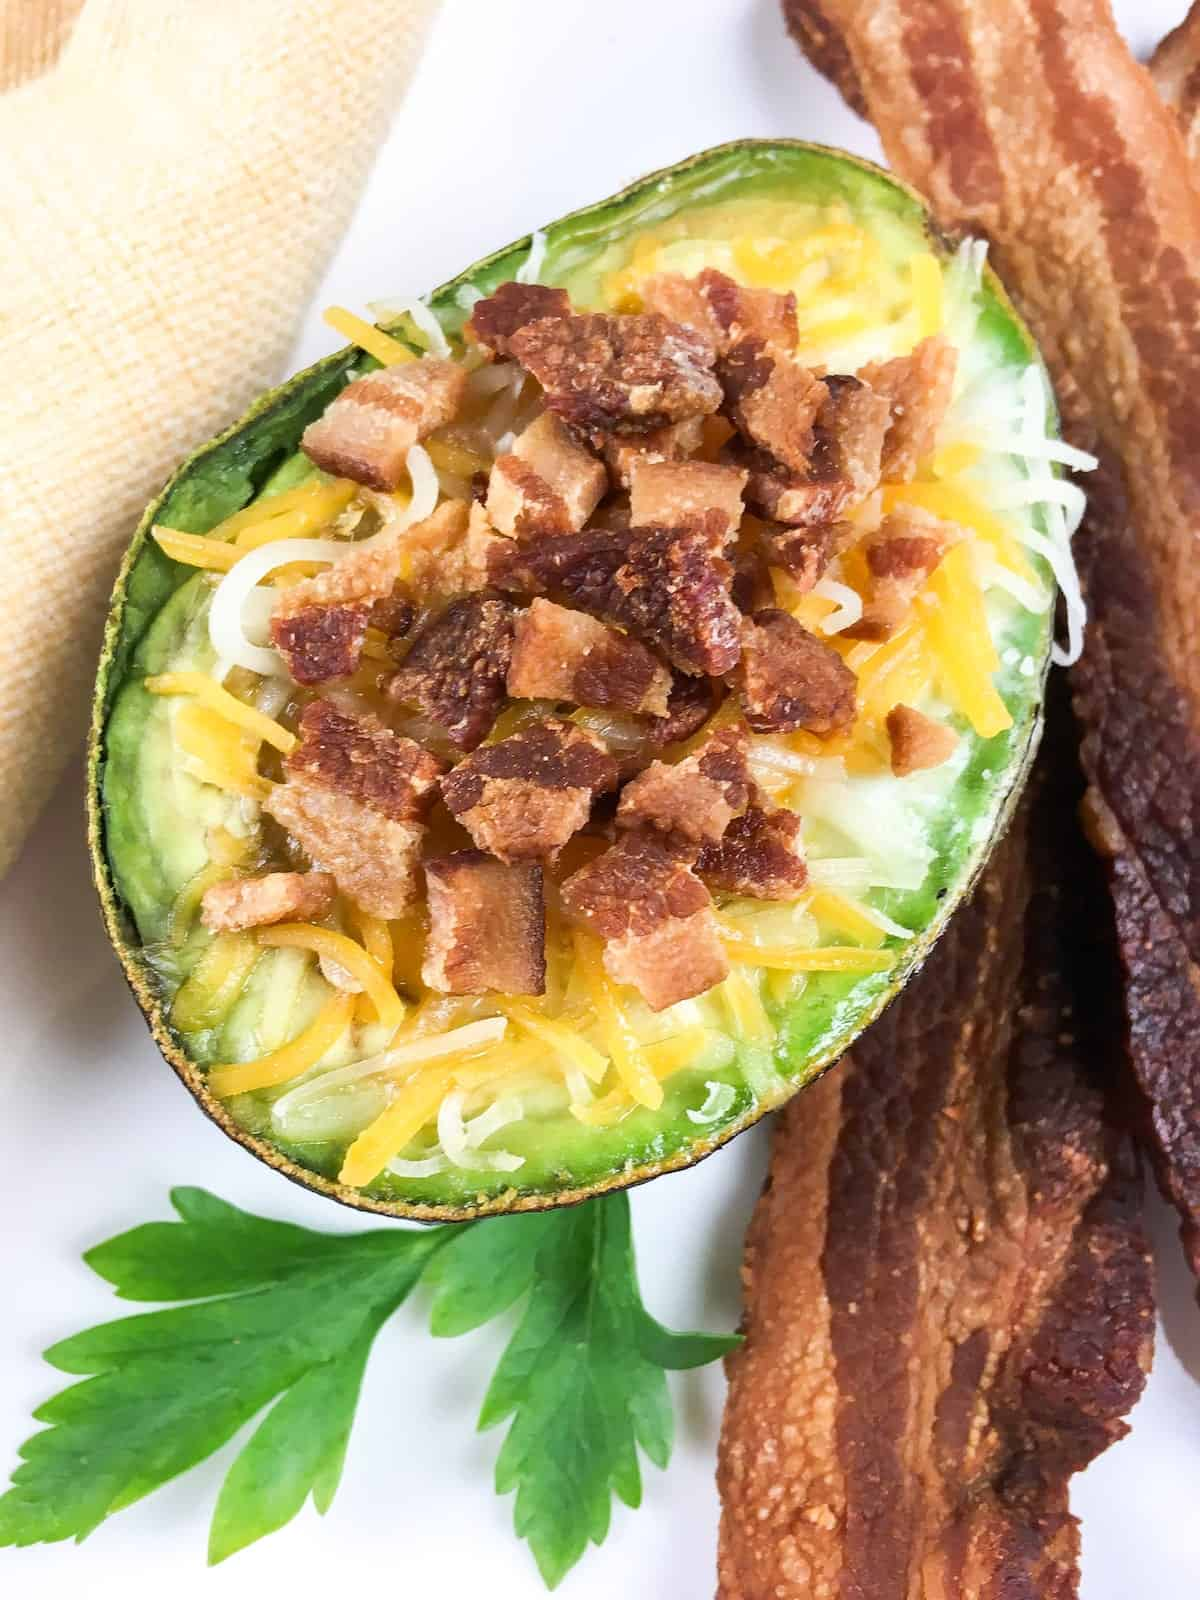 Loaded Avocado with Baked Eggs